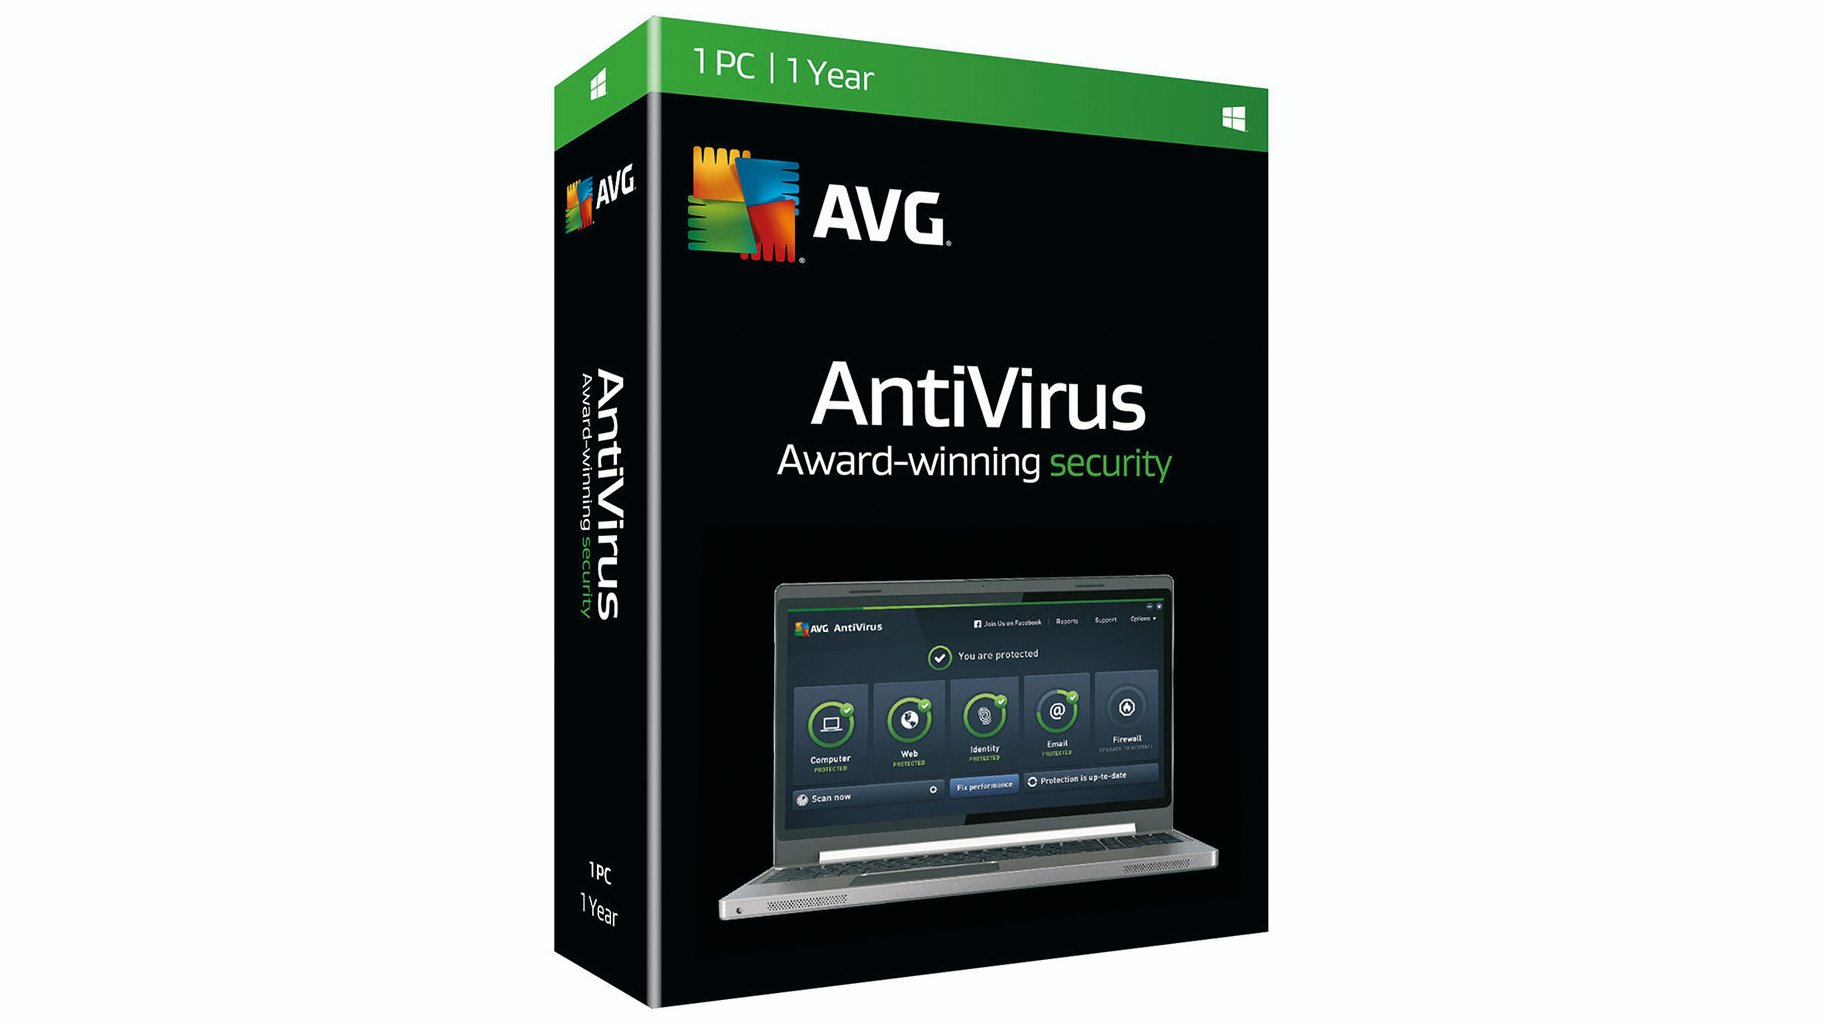 AVG Free Antivirus review: A decent free option, but go for Avast